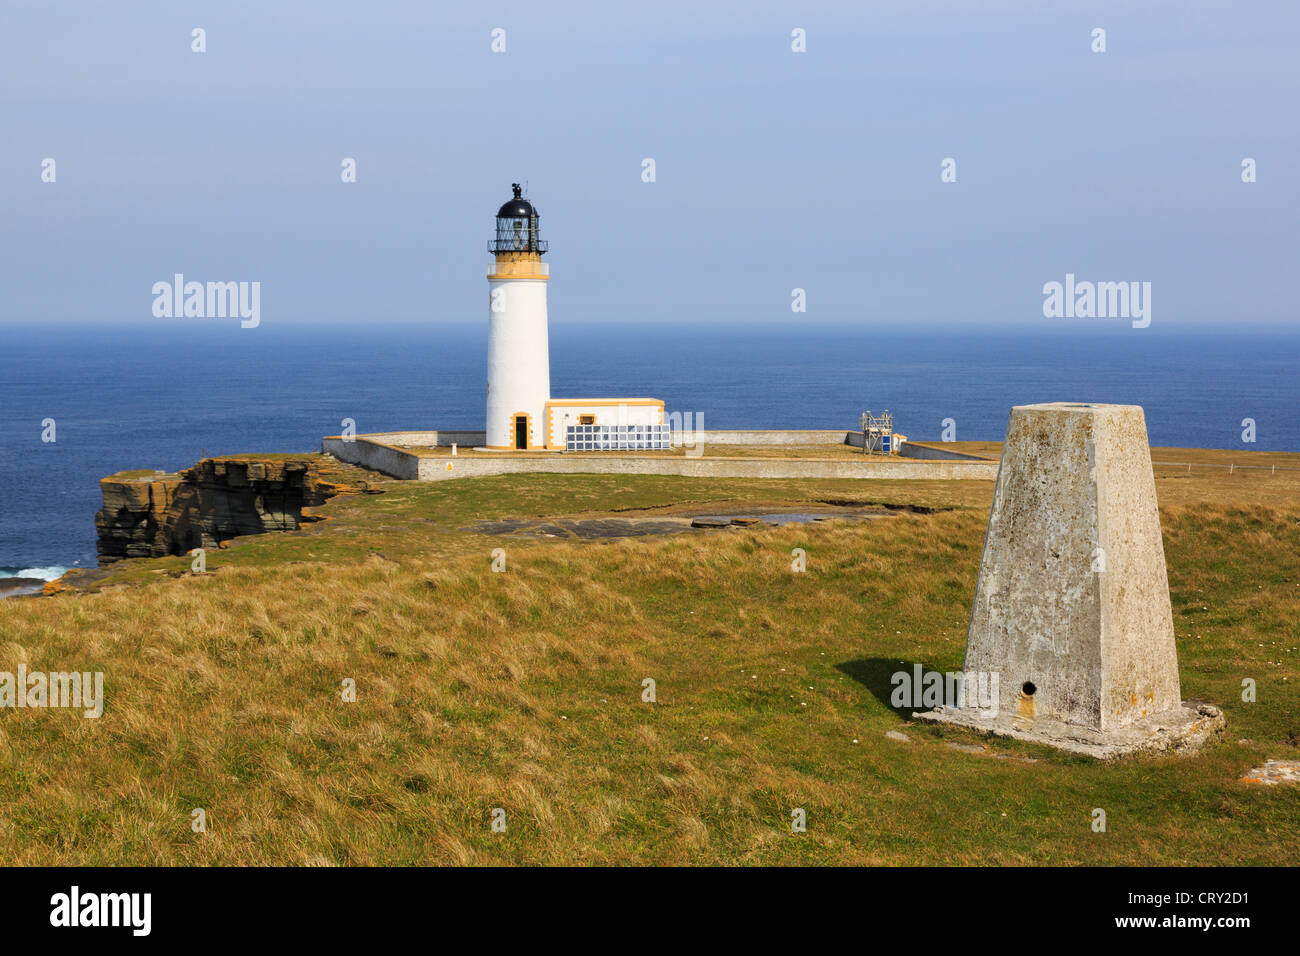 Trig point and lighthouse built on headland to warn ships off North Shoal at Noup Head, Westray Island, Orkney Islands, - Stock Image